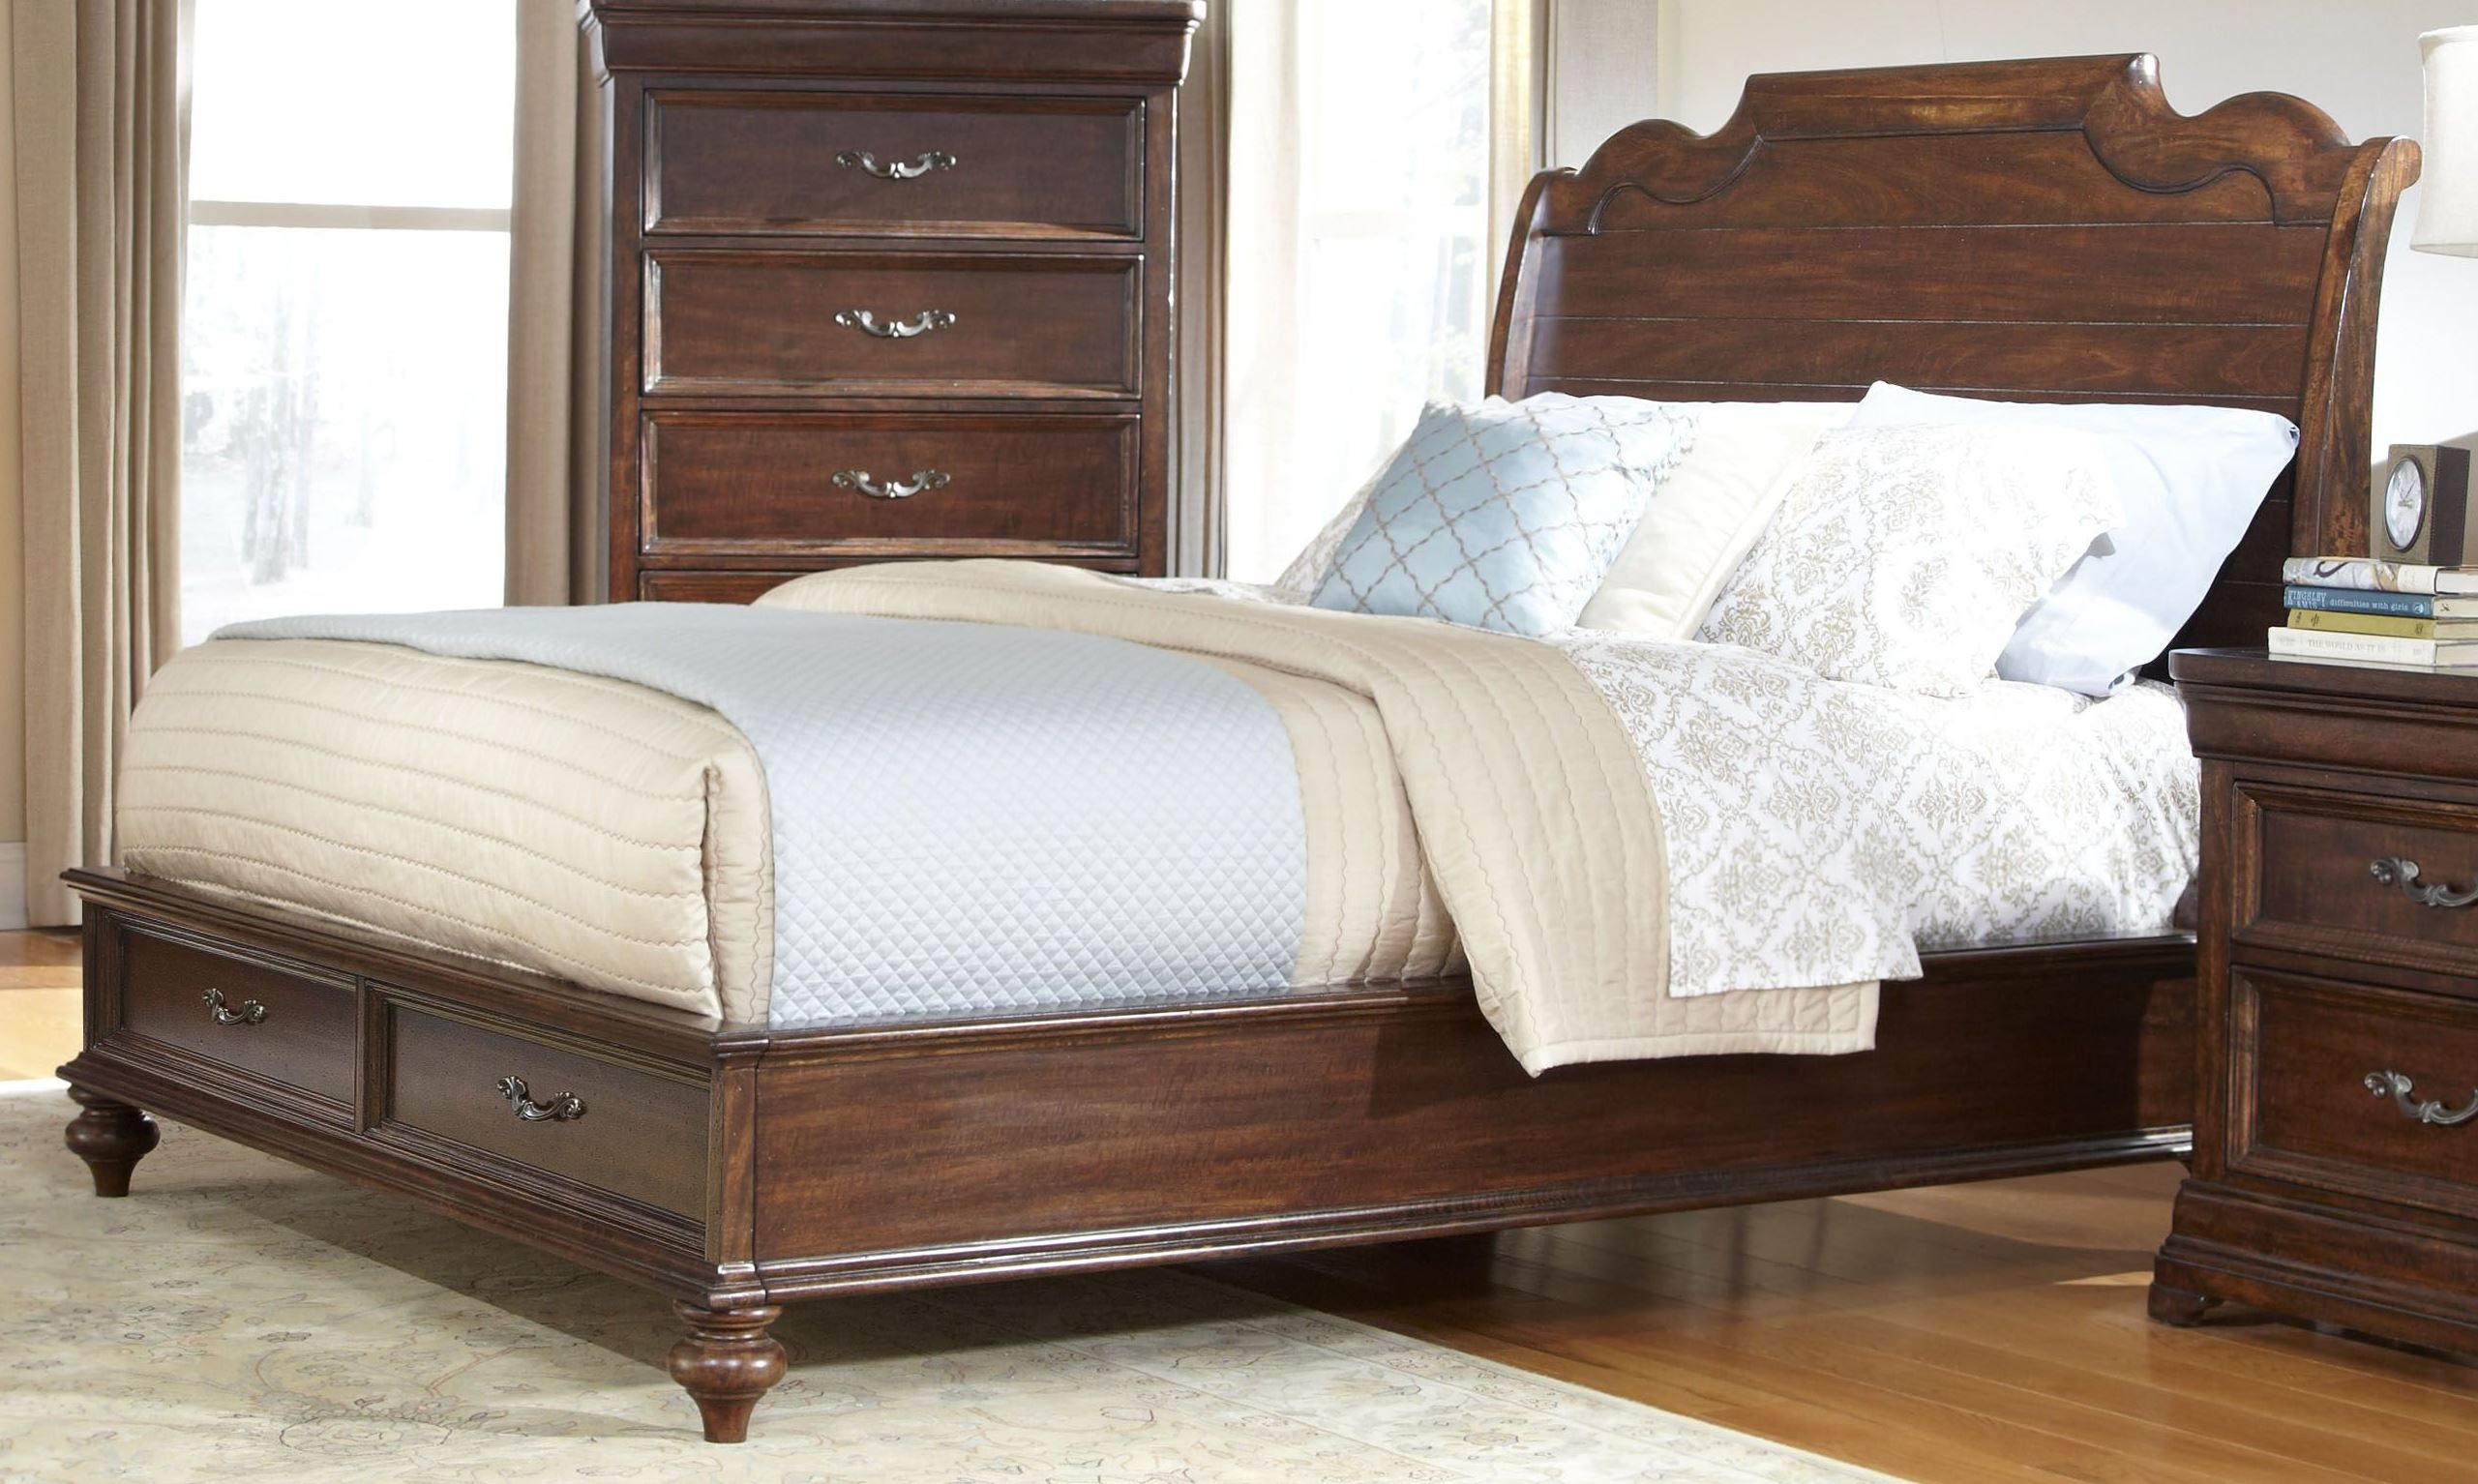 signature queen sleigh bed from american woodcrafters 8000 954 956 882 coleman furniture. Black Bedroom Furniture Sets. Home Design Ideas